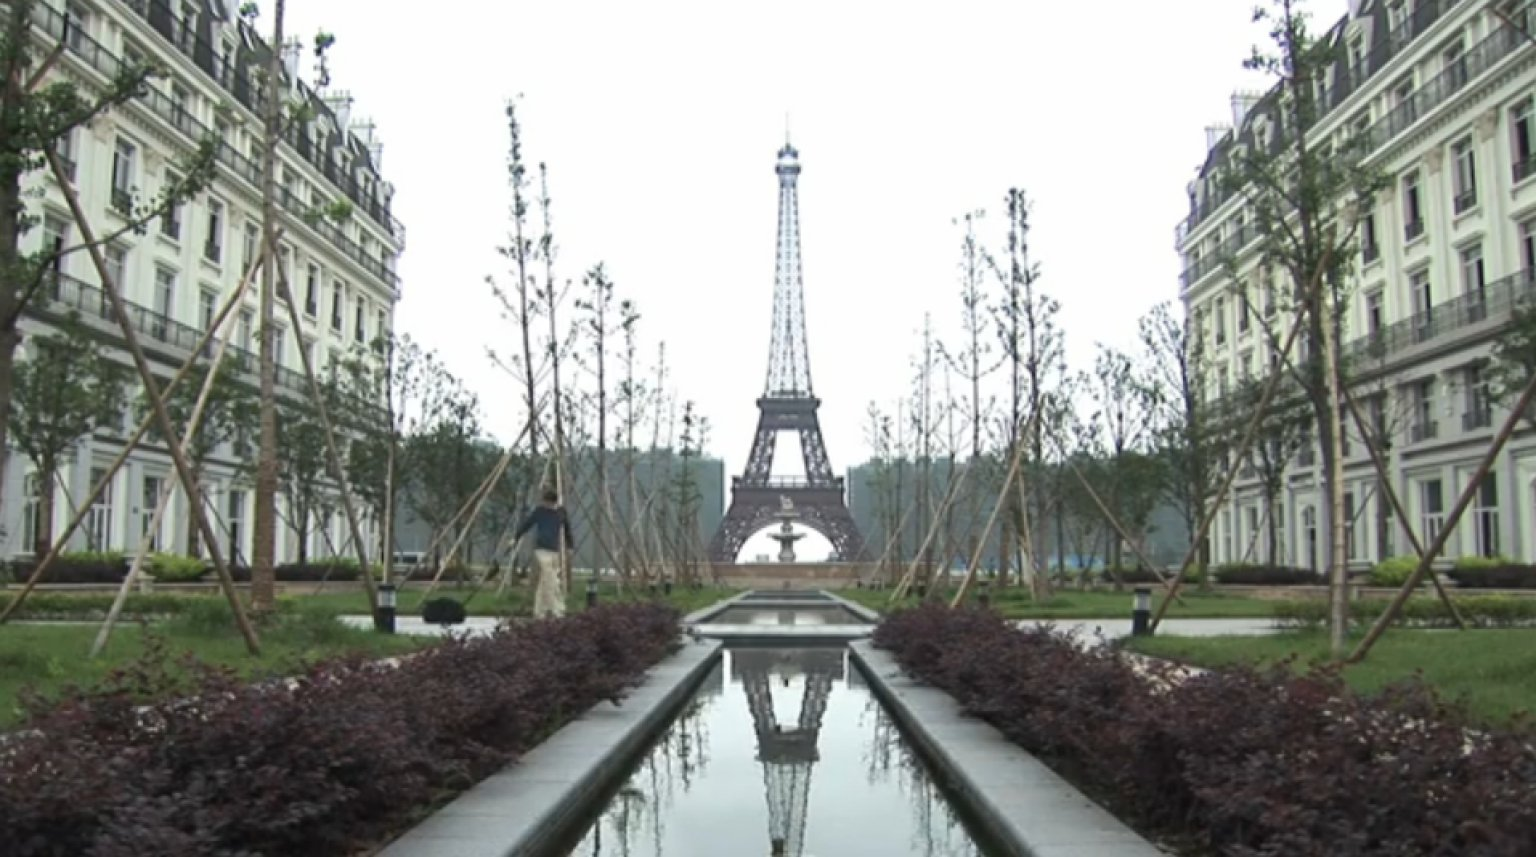 Paris In China Tianducheng Is An Eerie Abandoned City Of Lights - Tianducheng a ghostly abandoned clone of paris in the middle of china